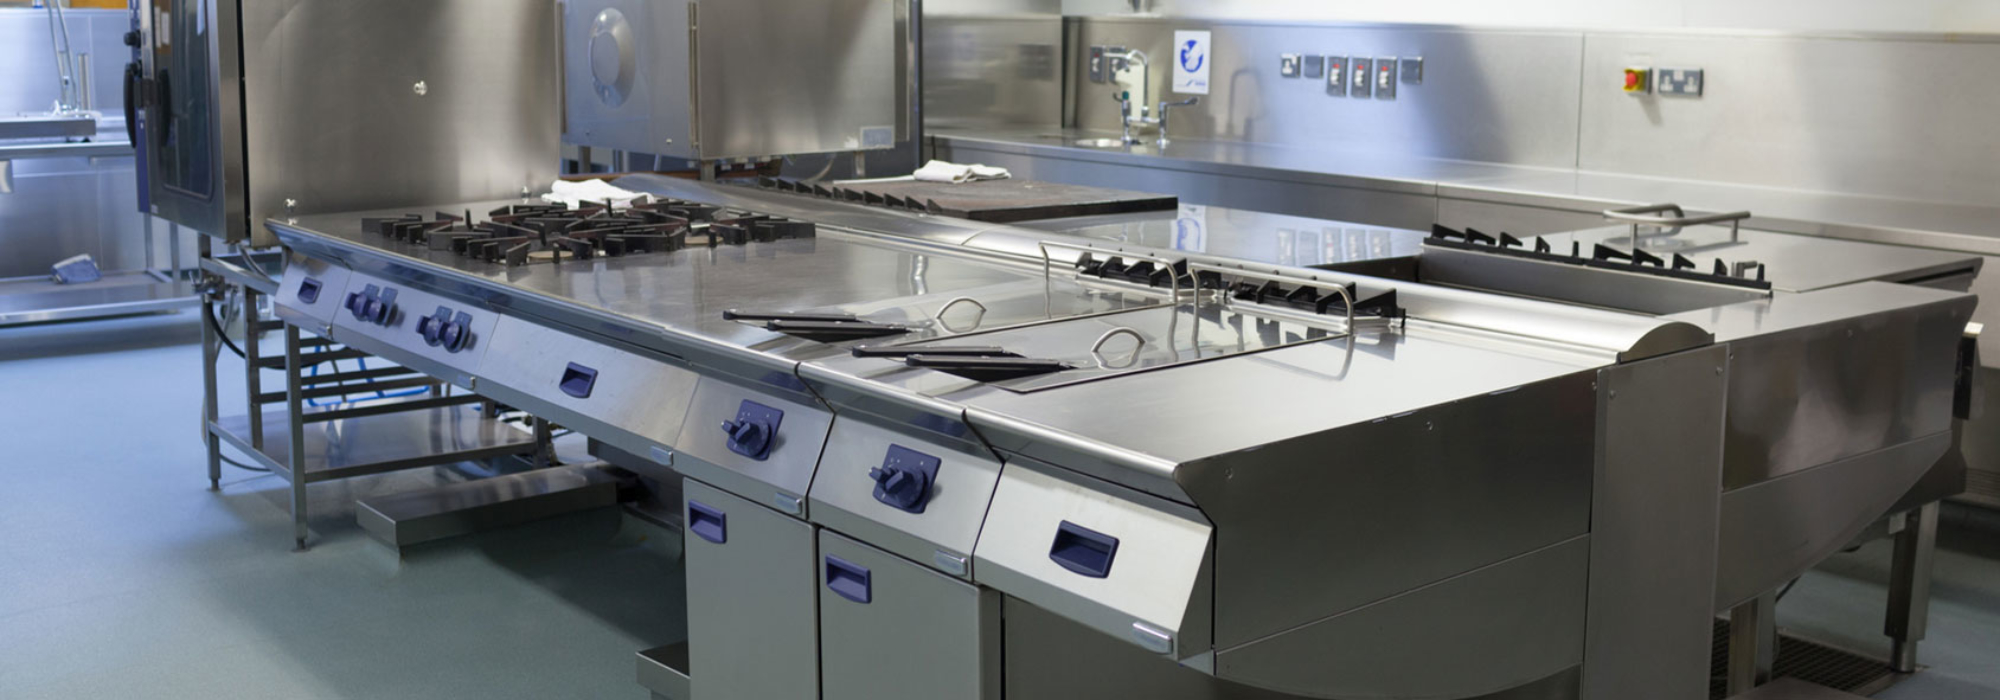 Attrayant Home   Superior Commercial Kitchens